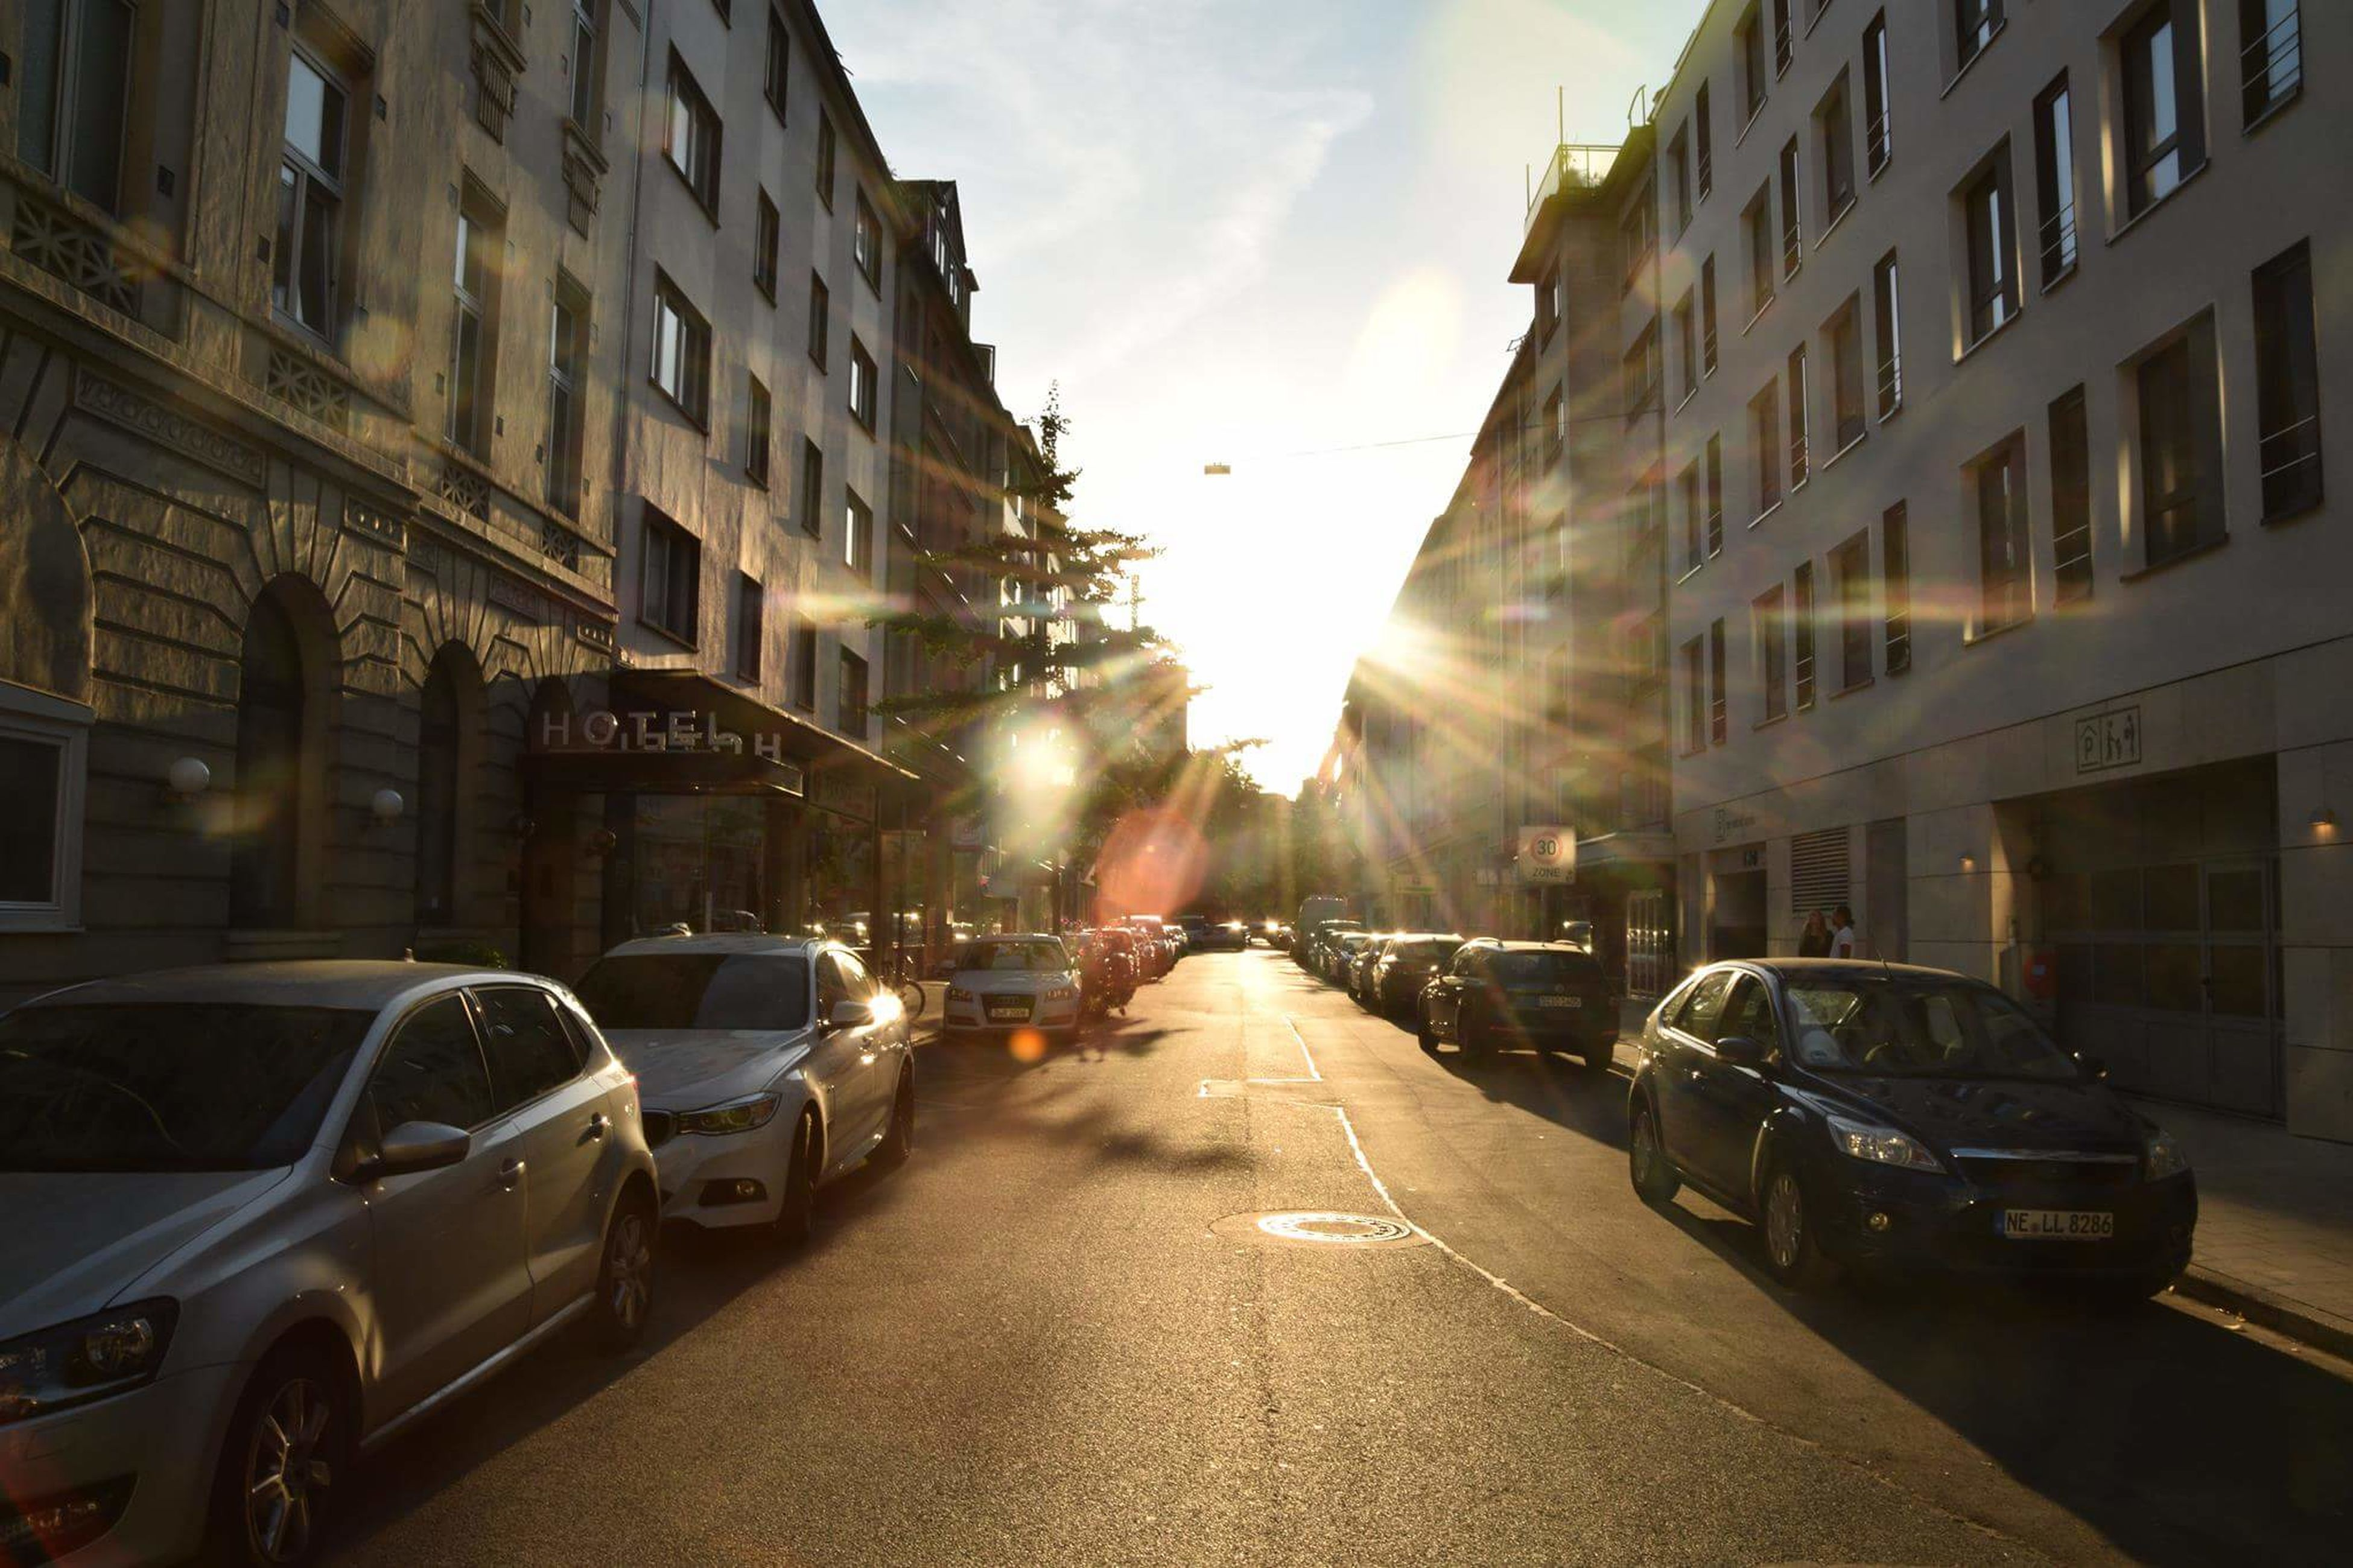 car, street, architecture, building exterior, transportation, city, built structure, sunlight, land vehicle, road, mode of transport, sunset, sky, outdoors, no people, day